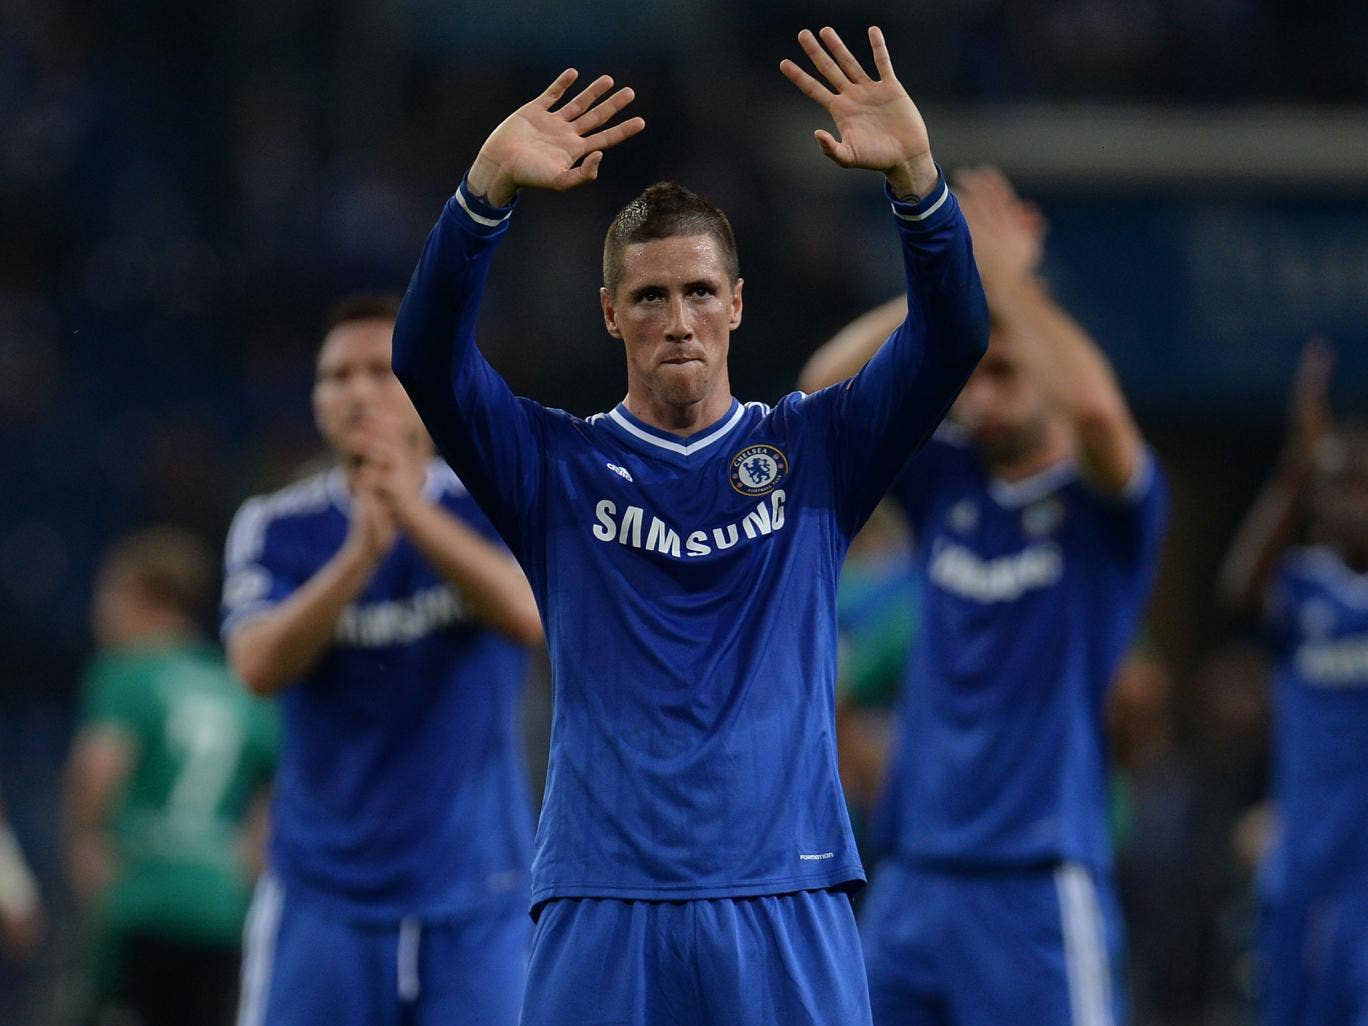 Fernando Torres scored twice in the 3-0 win over Schalke